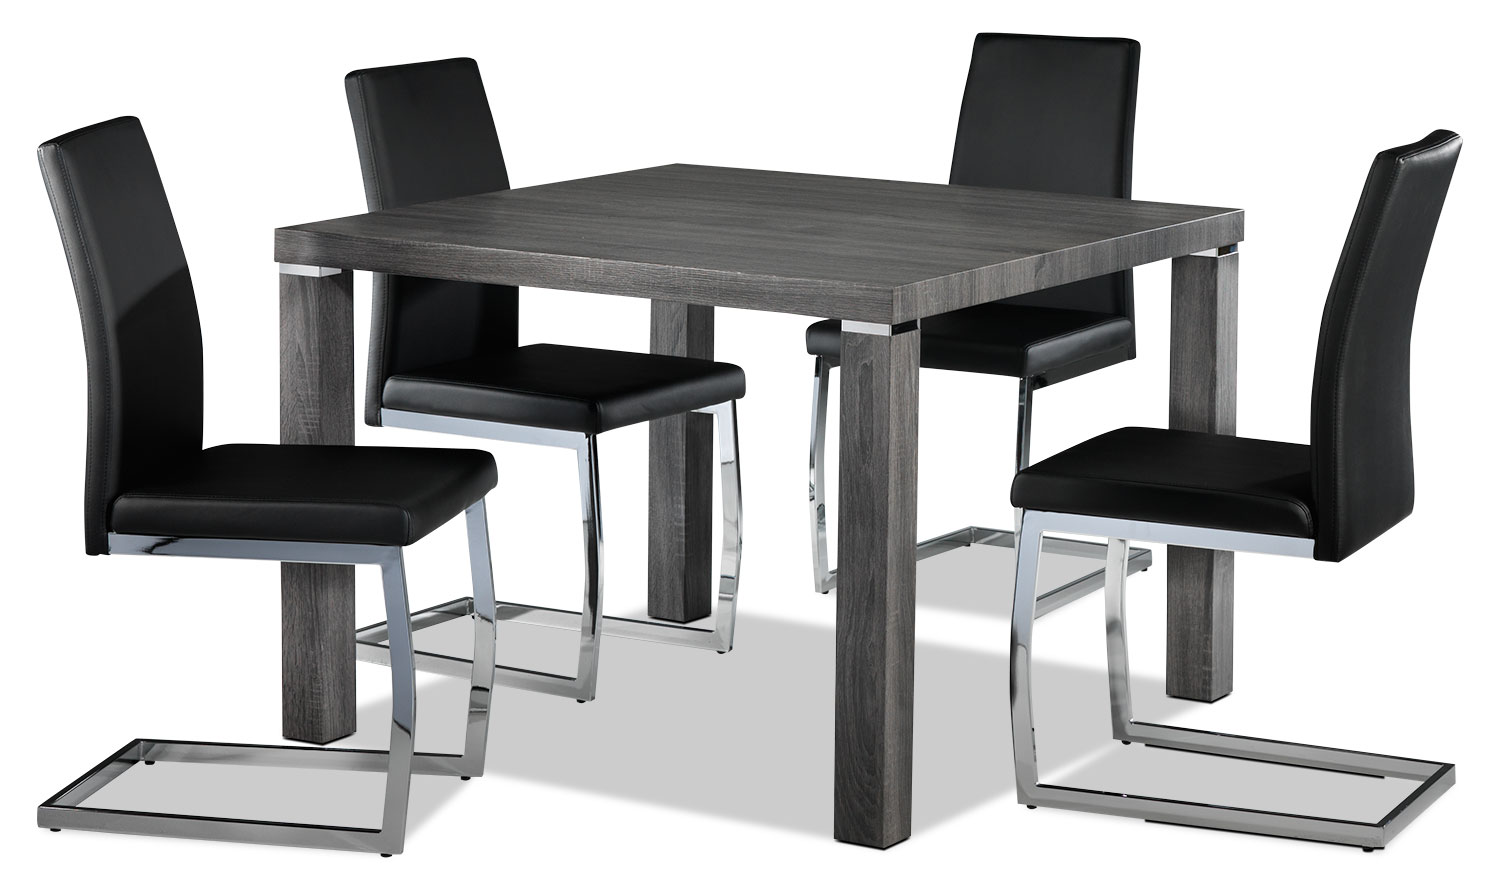 Albert 5-Piece Dinette Set - Charcoal